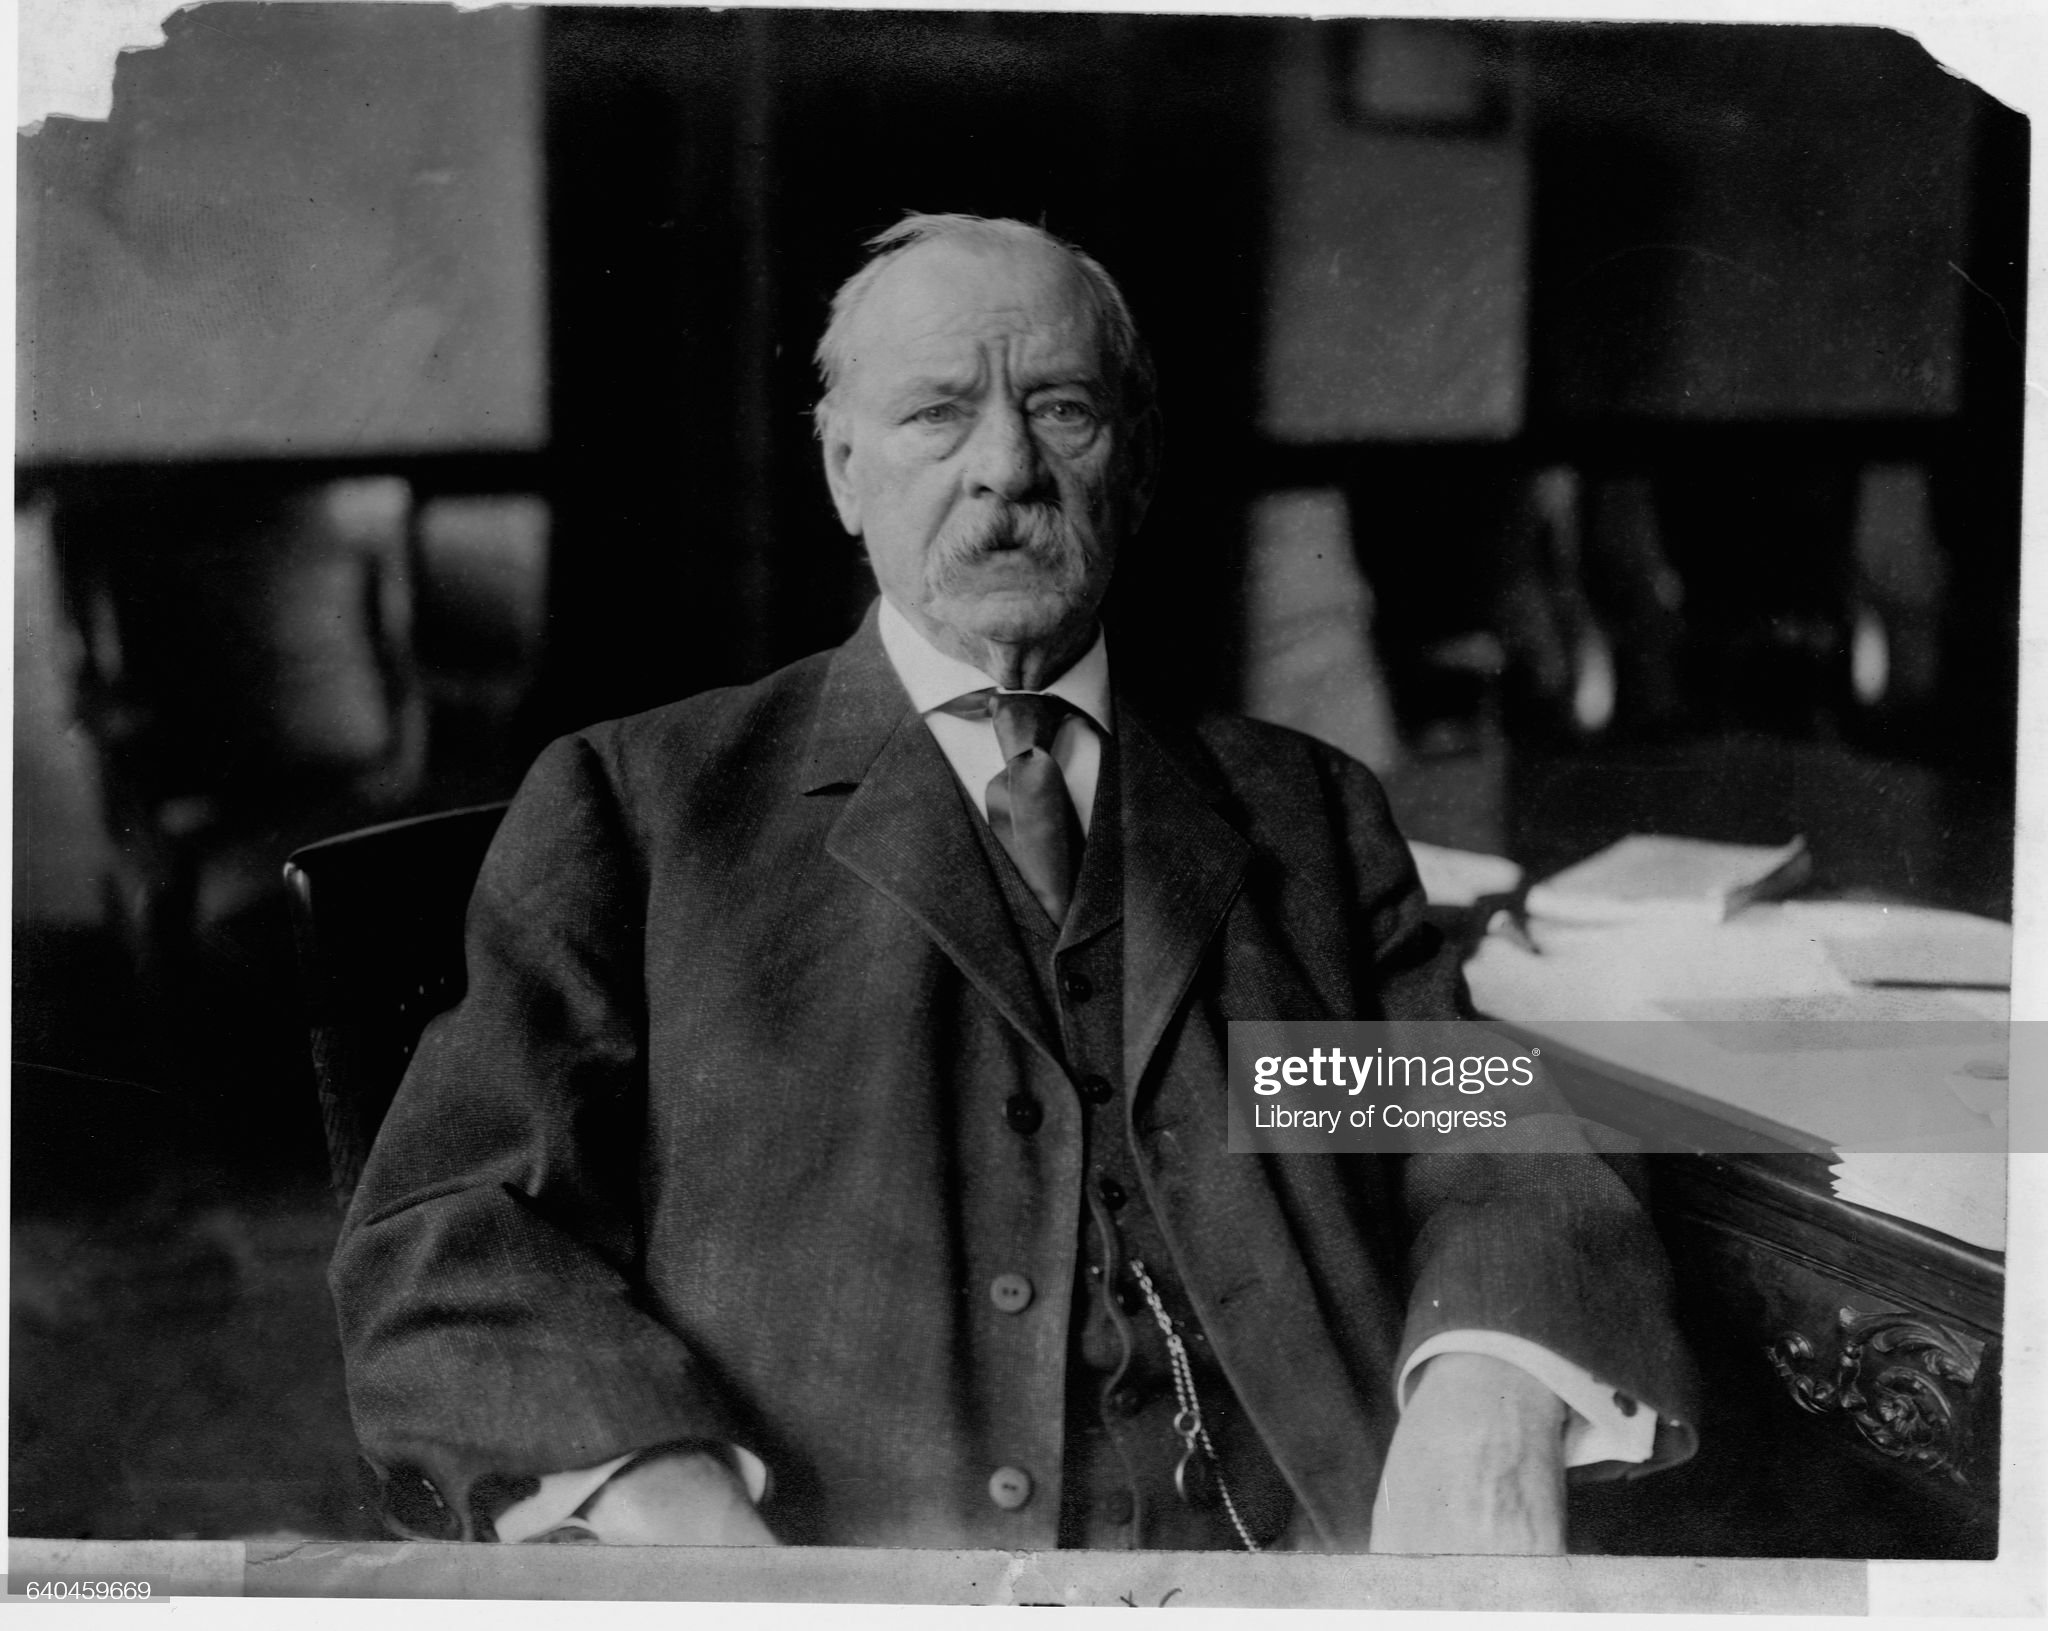 Grover Cleveland at Desk : News Photo